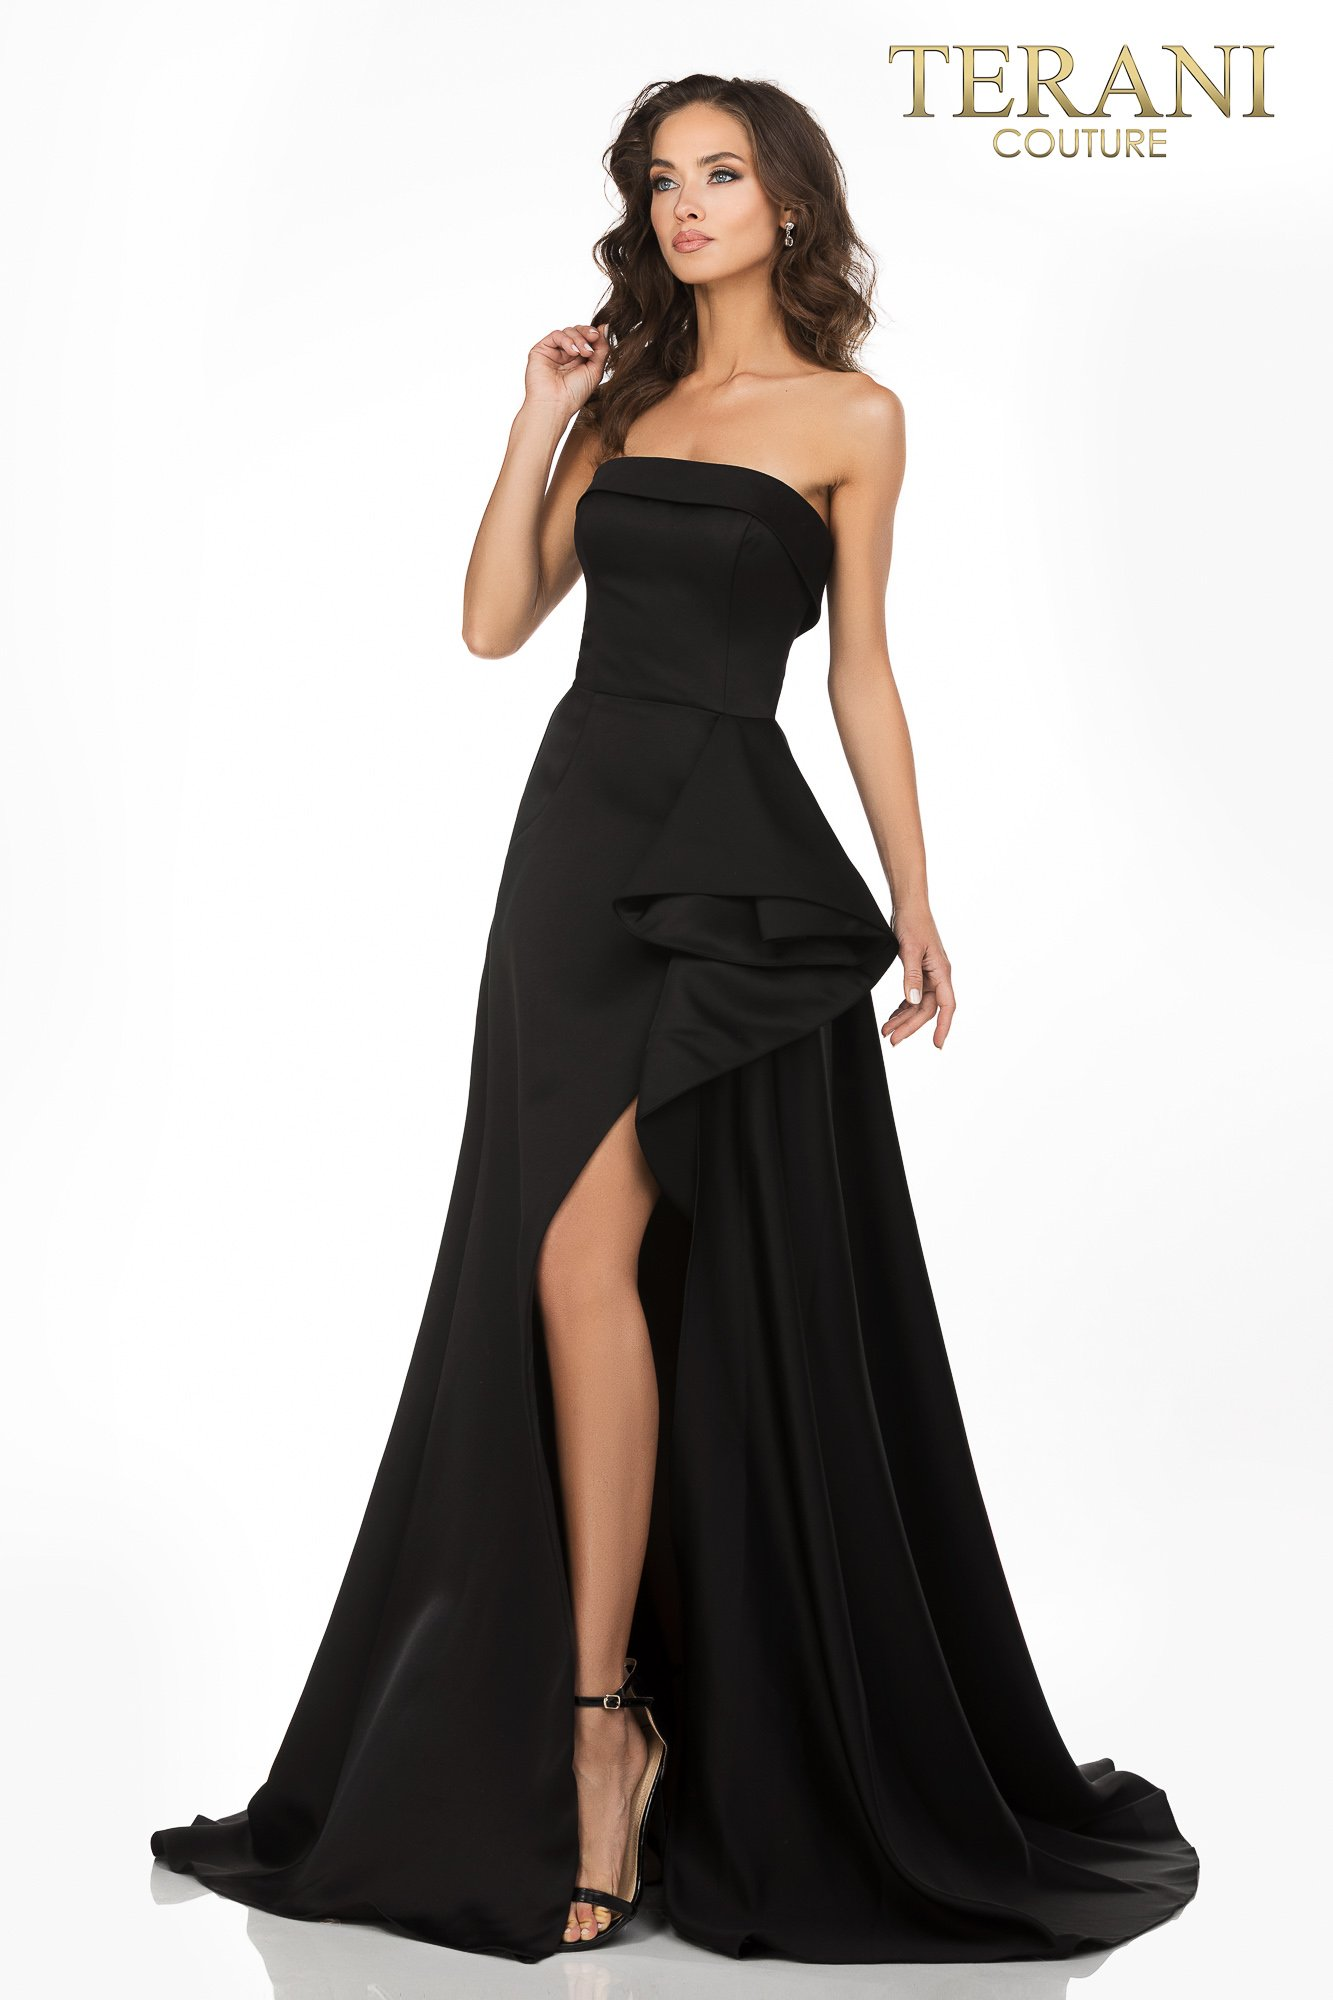 Black colored Strapless A–line evening gown with a cascading peplum – Style number 2012P1288